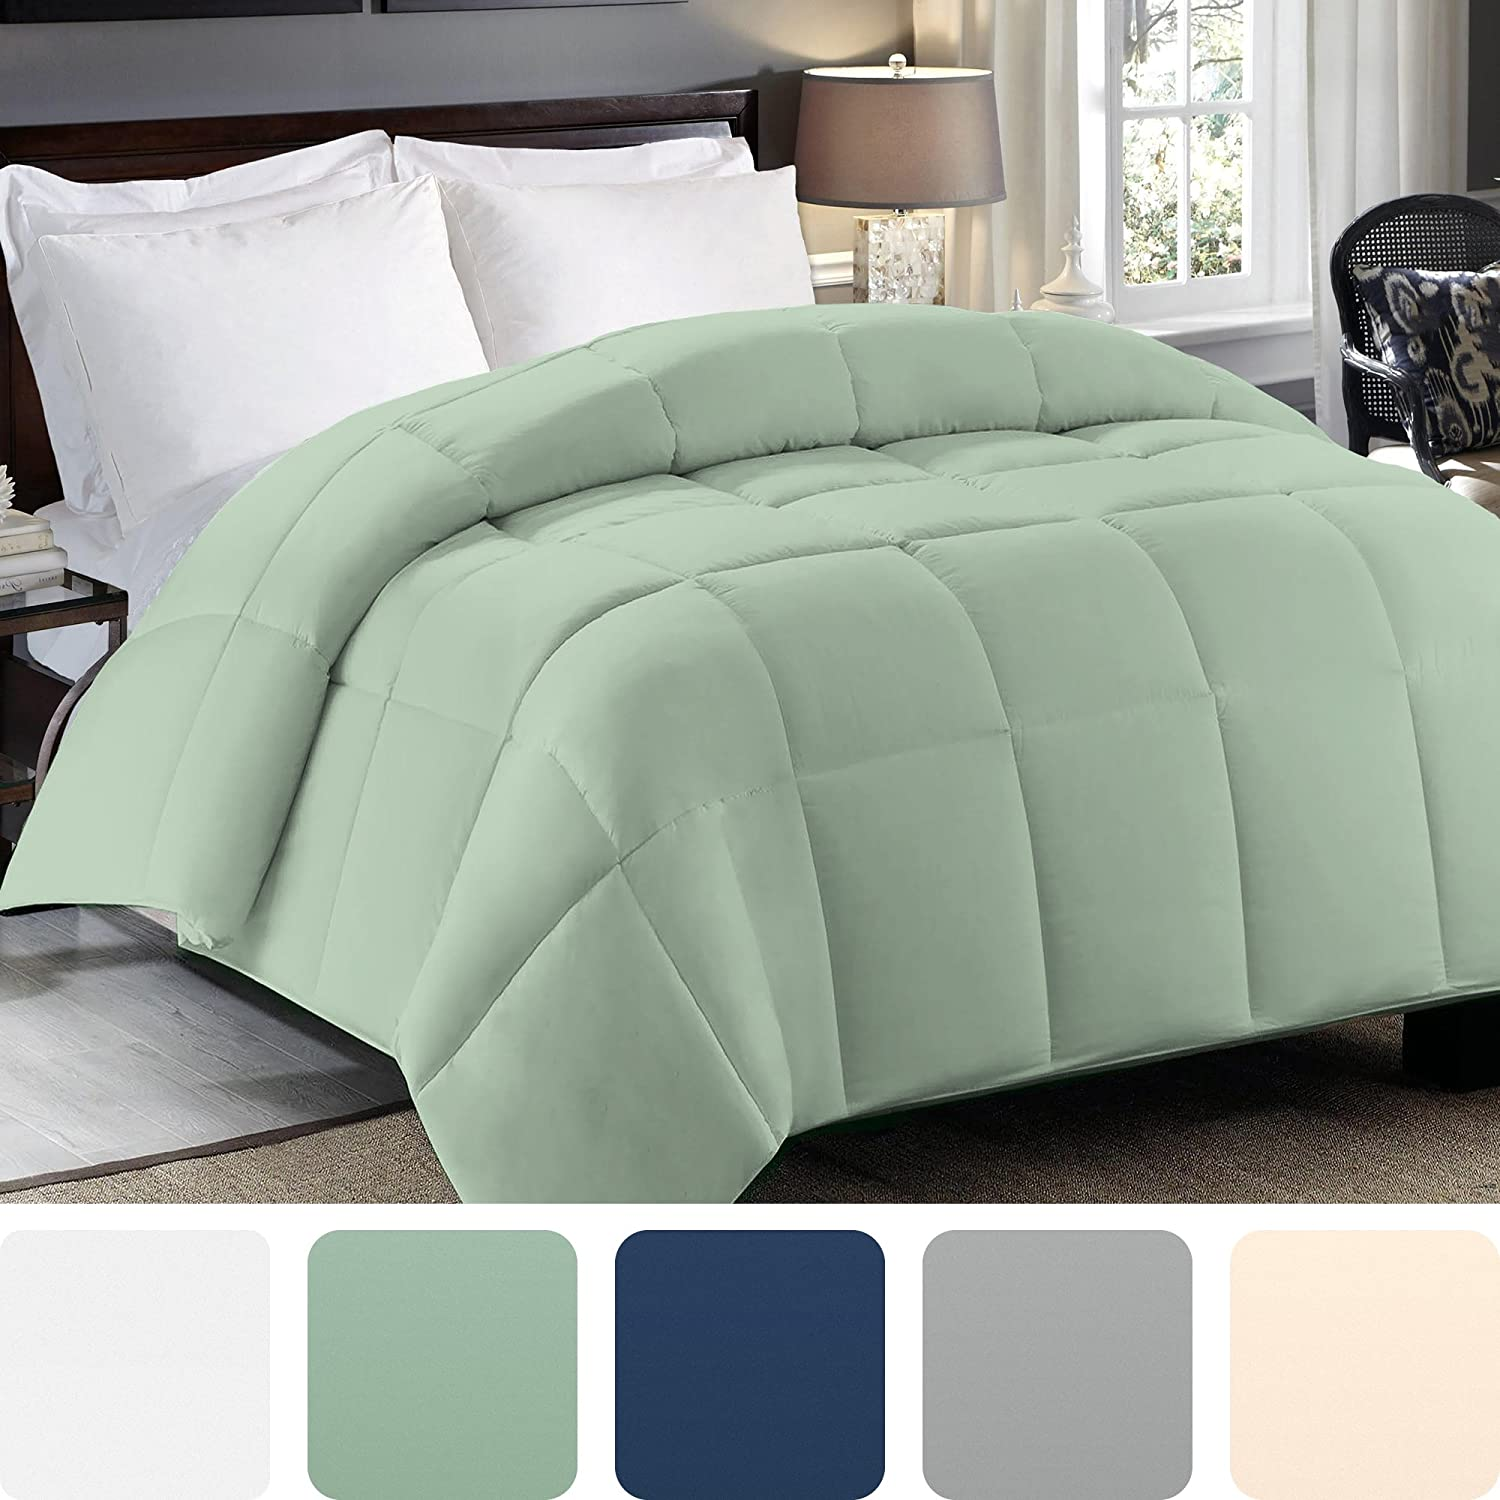 Twin Comforter Down Alternative   Sage Green Duvet Insert Or Stand Alone Bed Comforters   All Season Hypoallergenic Bedding   Lightweight And Machine Washable   Fits Twin And Twin Xl Size by Cosy House Collection